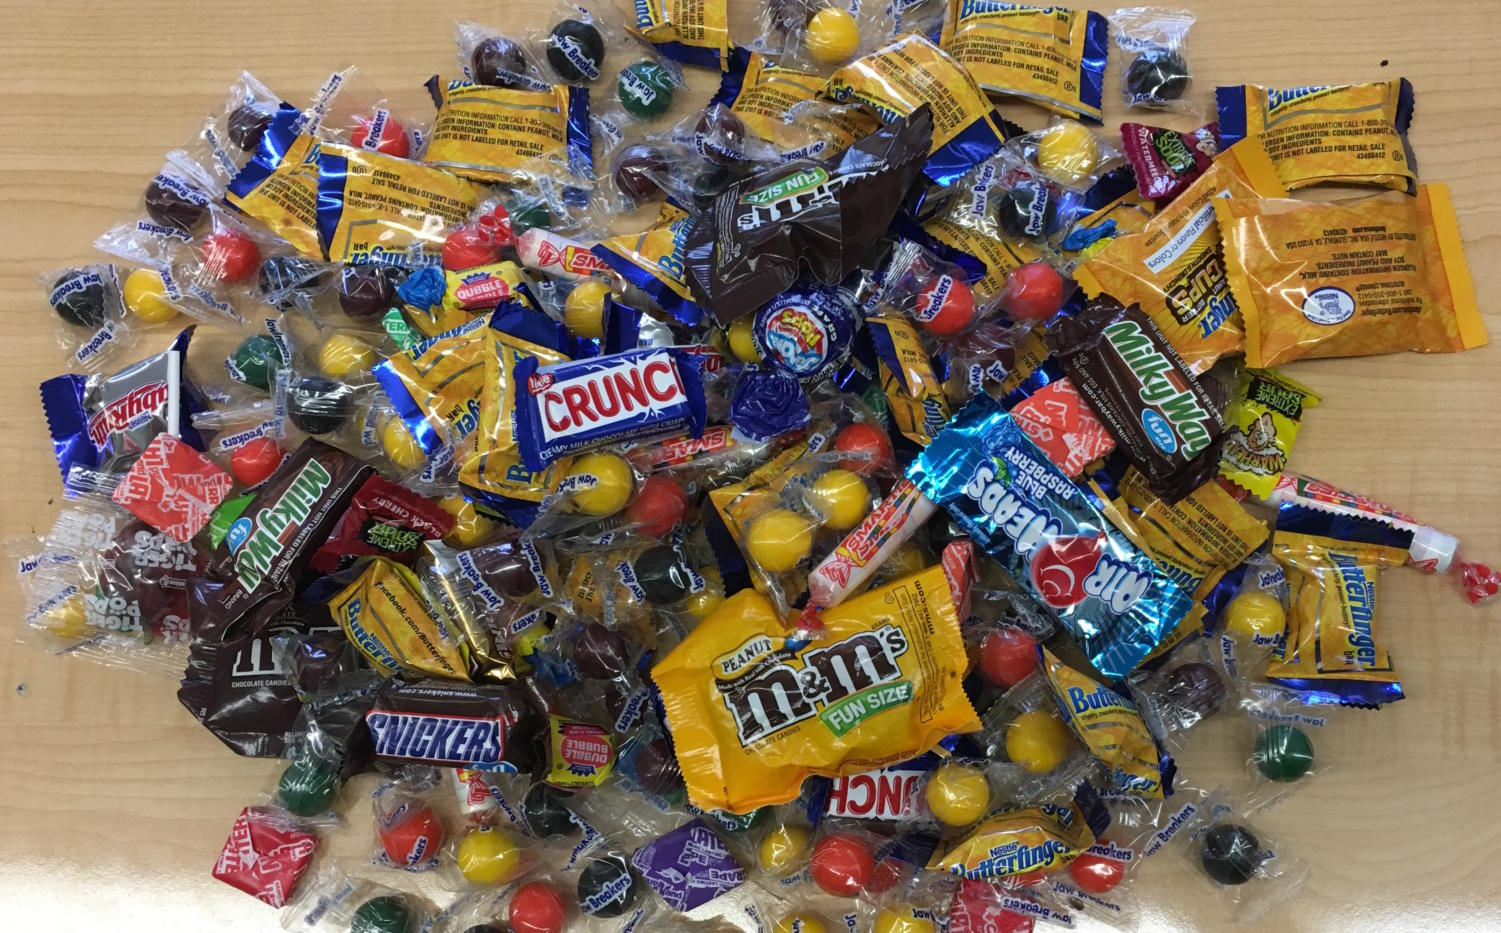 Halloween is right around the corner, but which trick-or-treat candy is the most popular?